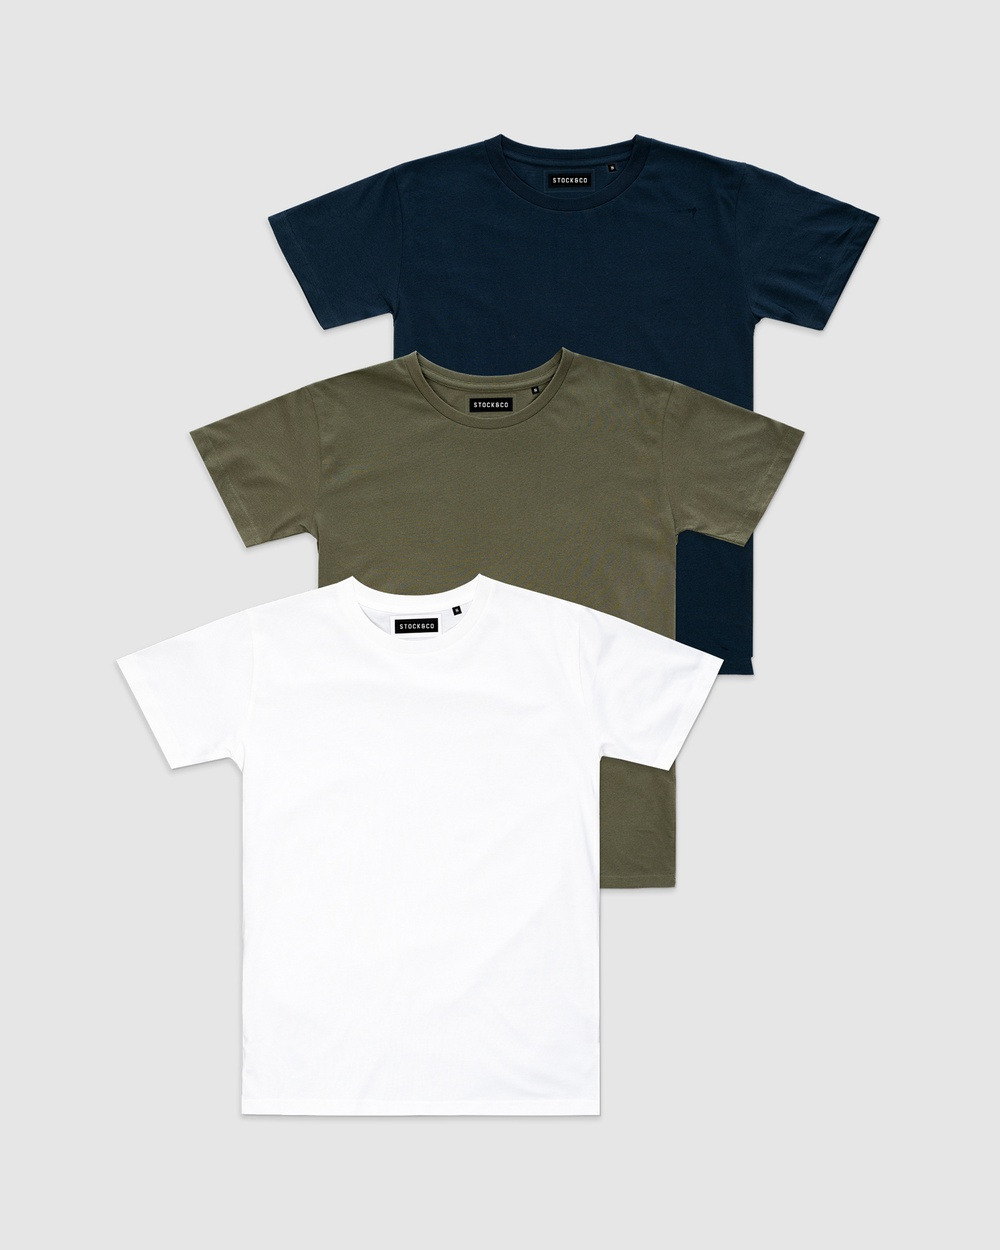 Stock & Co. - 3 Pack Stock Tee   Kids - T-Shirts & Singlets (MULTI) 3-Pack Stock Tee - Kids